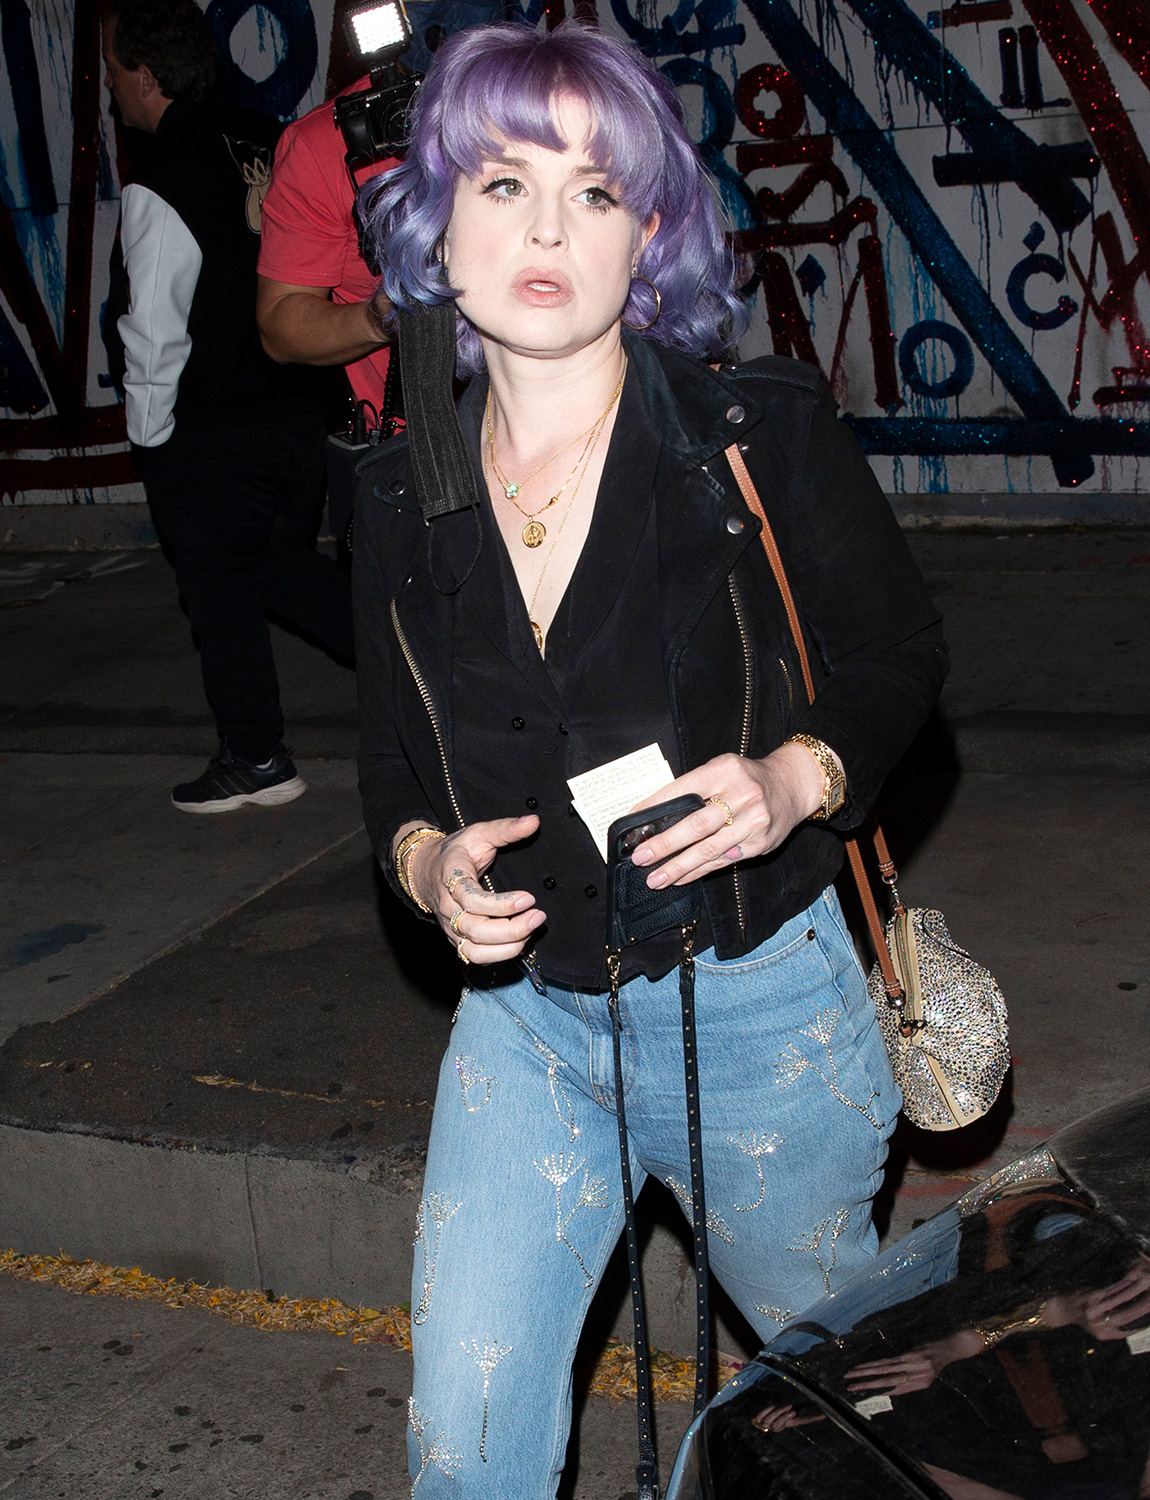 Kelly Osbourne looks fresh with her bright purple hair while leaving 'Craigs' Restaurant in West Hollywood, CA